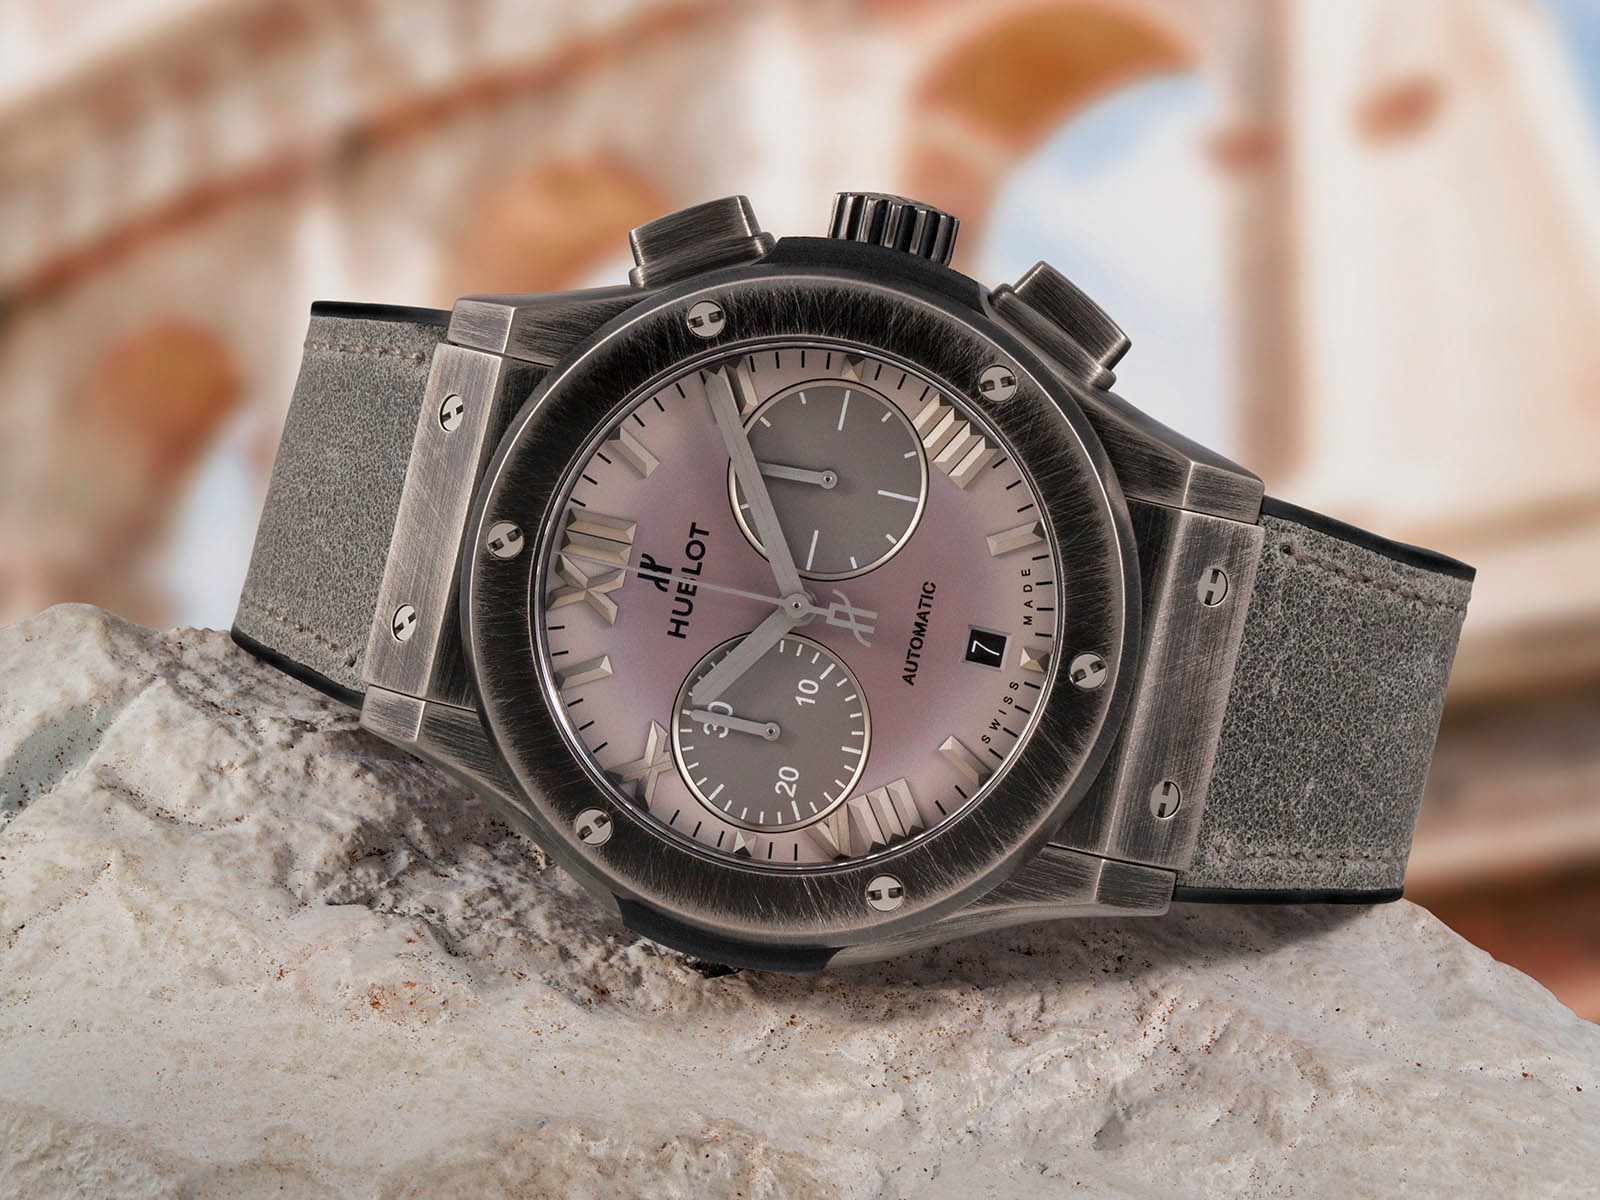 521-nx-4610-vr-rom20-hublot-classic-fusion-chronograph-special-edition-boutique-roma-2.jpg